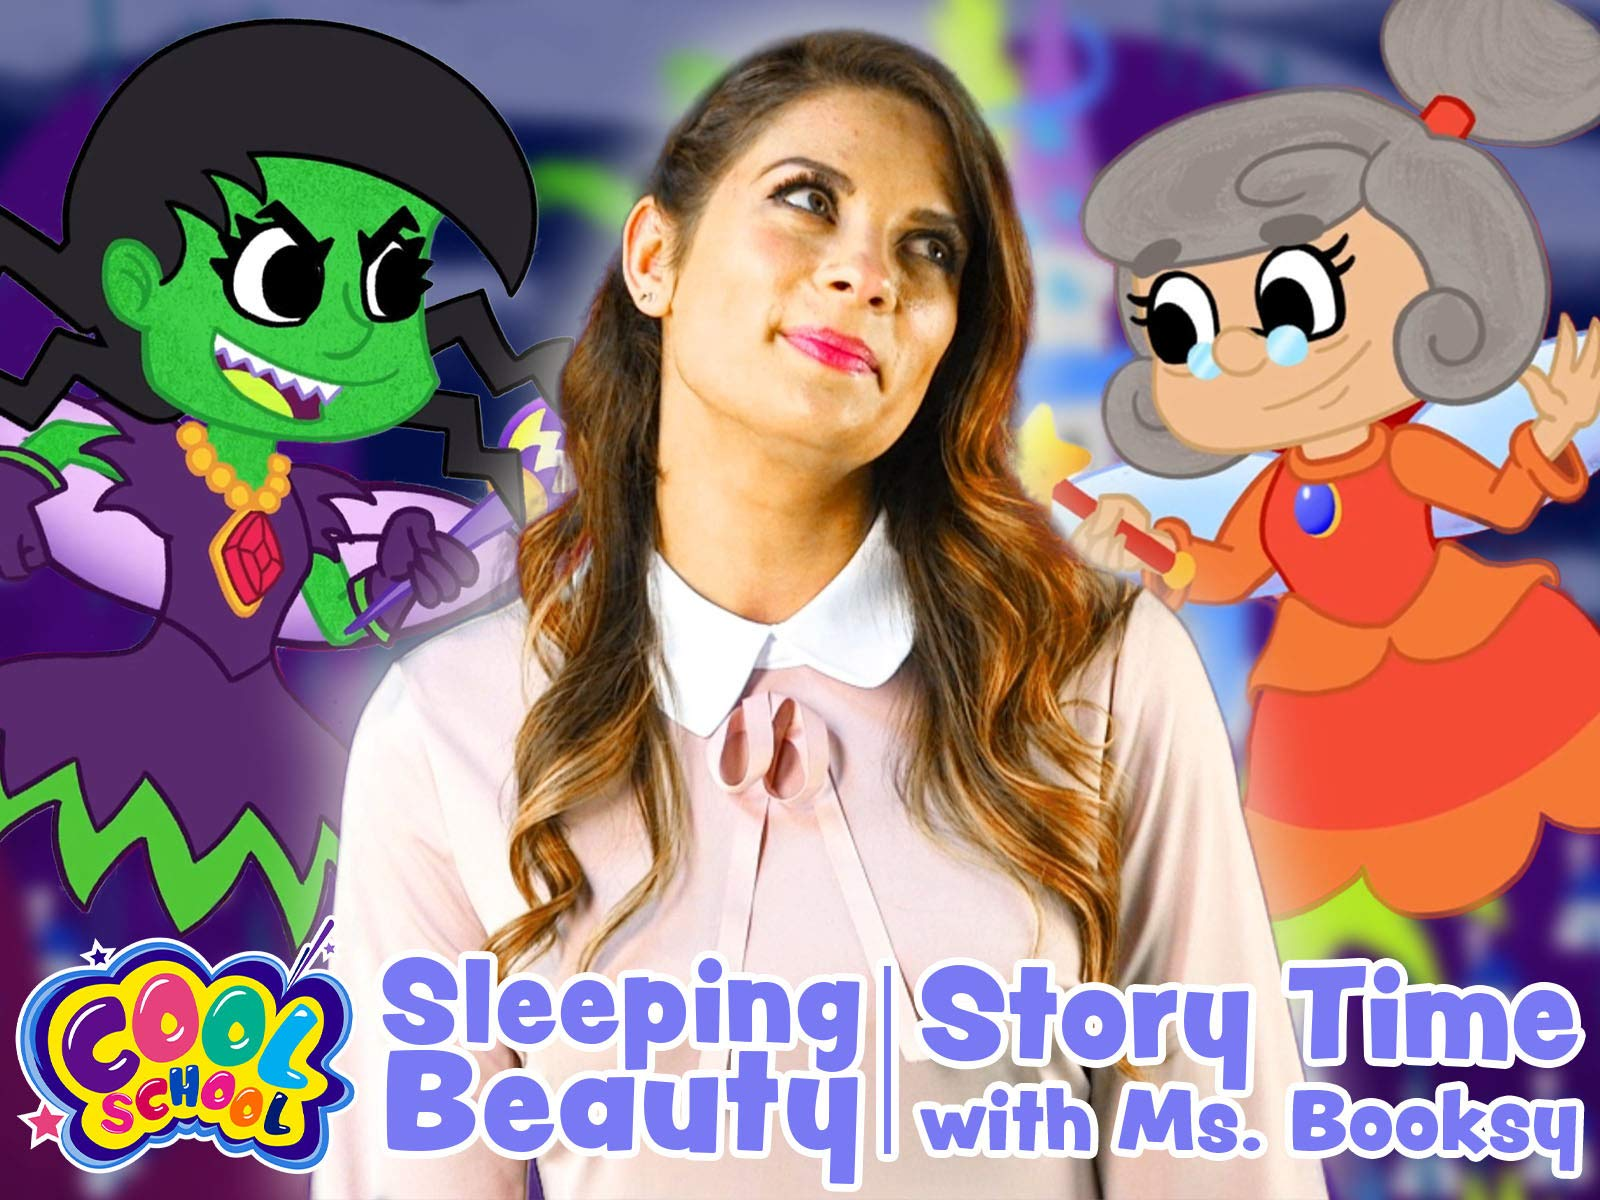 Sleeping Beauty: Story Time with Ms. Booksy - Cool School on Amazon Prime Video UK